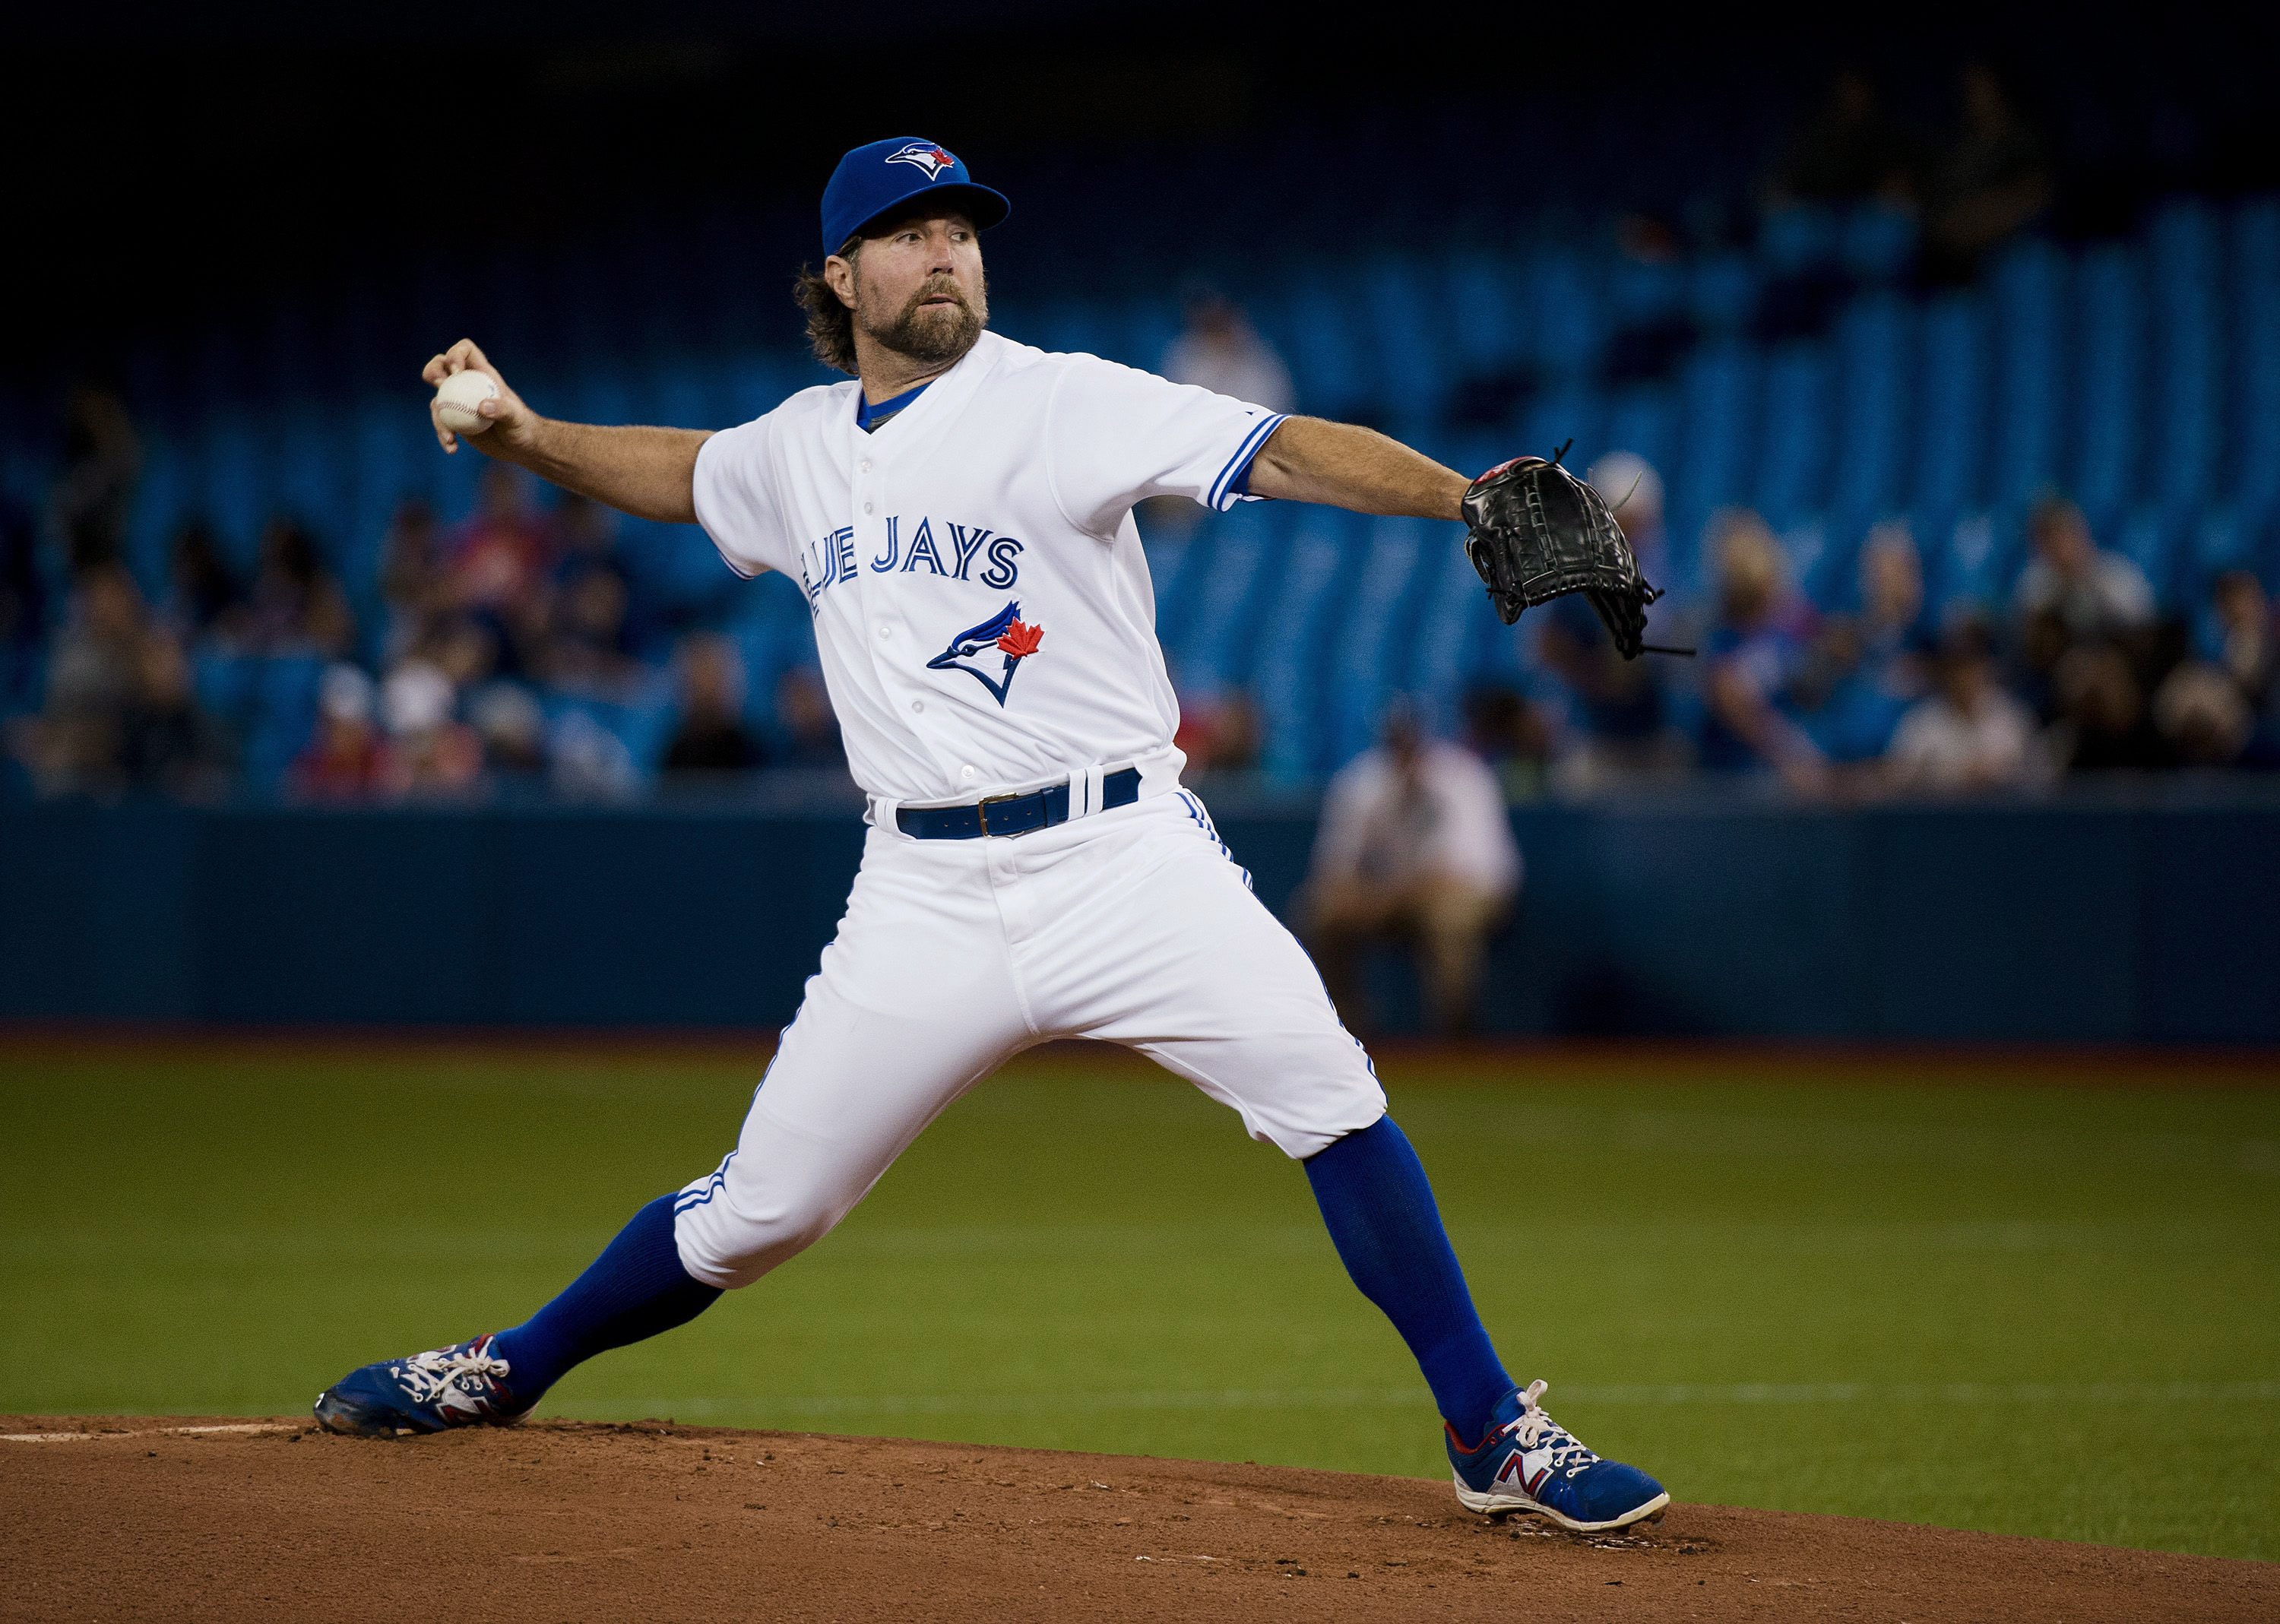 Toronto Blue Jays starting pitcher R.A. Dickey works against the New York Mets during the first inning of a baseball game Thursday, June 18, 2015, in Toronto. (Nathan Denette/The Canadian Press via AP)